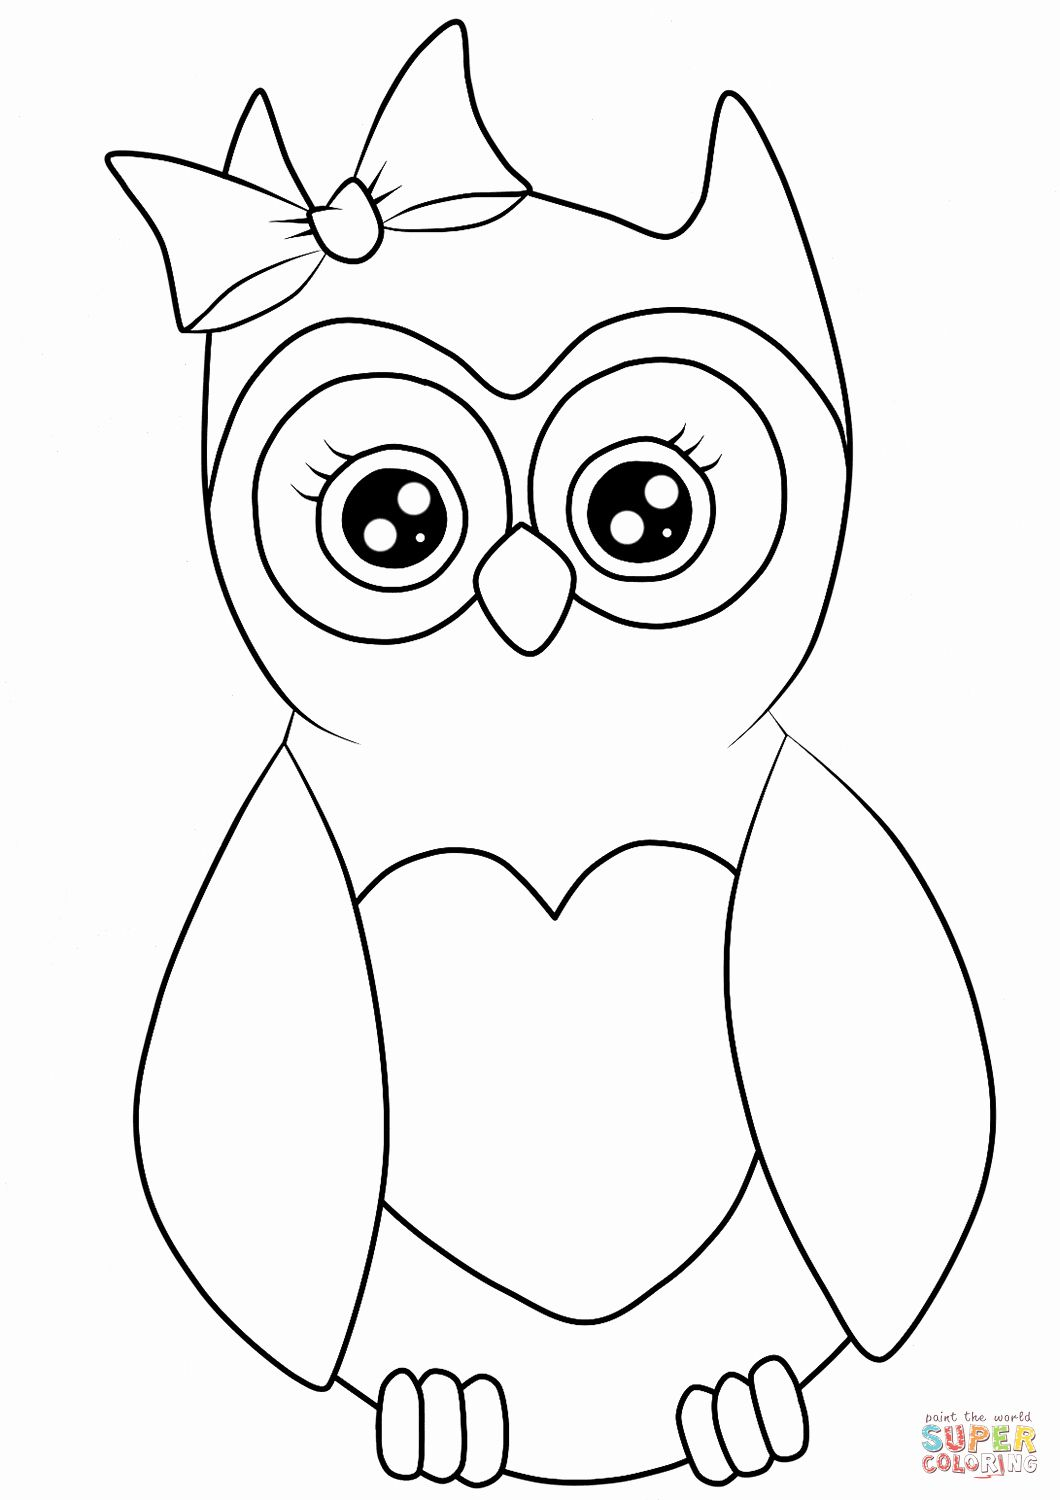 Cute Owl Coloring Pages Printable In 2020 Owl Coloring Pages Fox Coloring Page Bird Coloring Pages